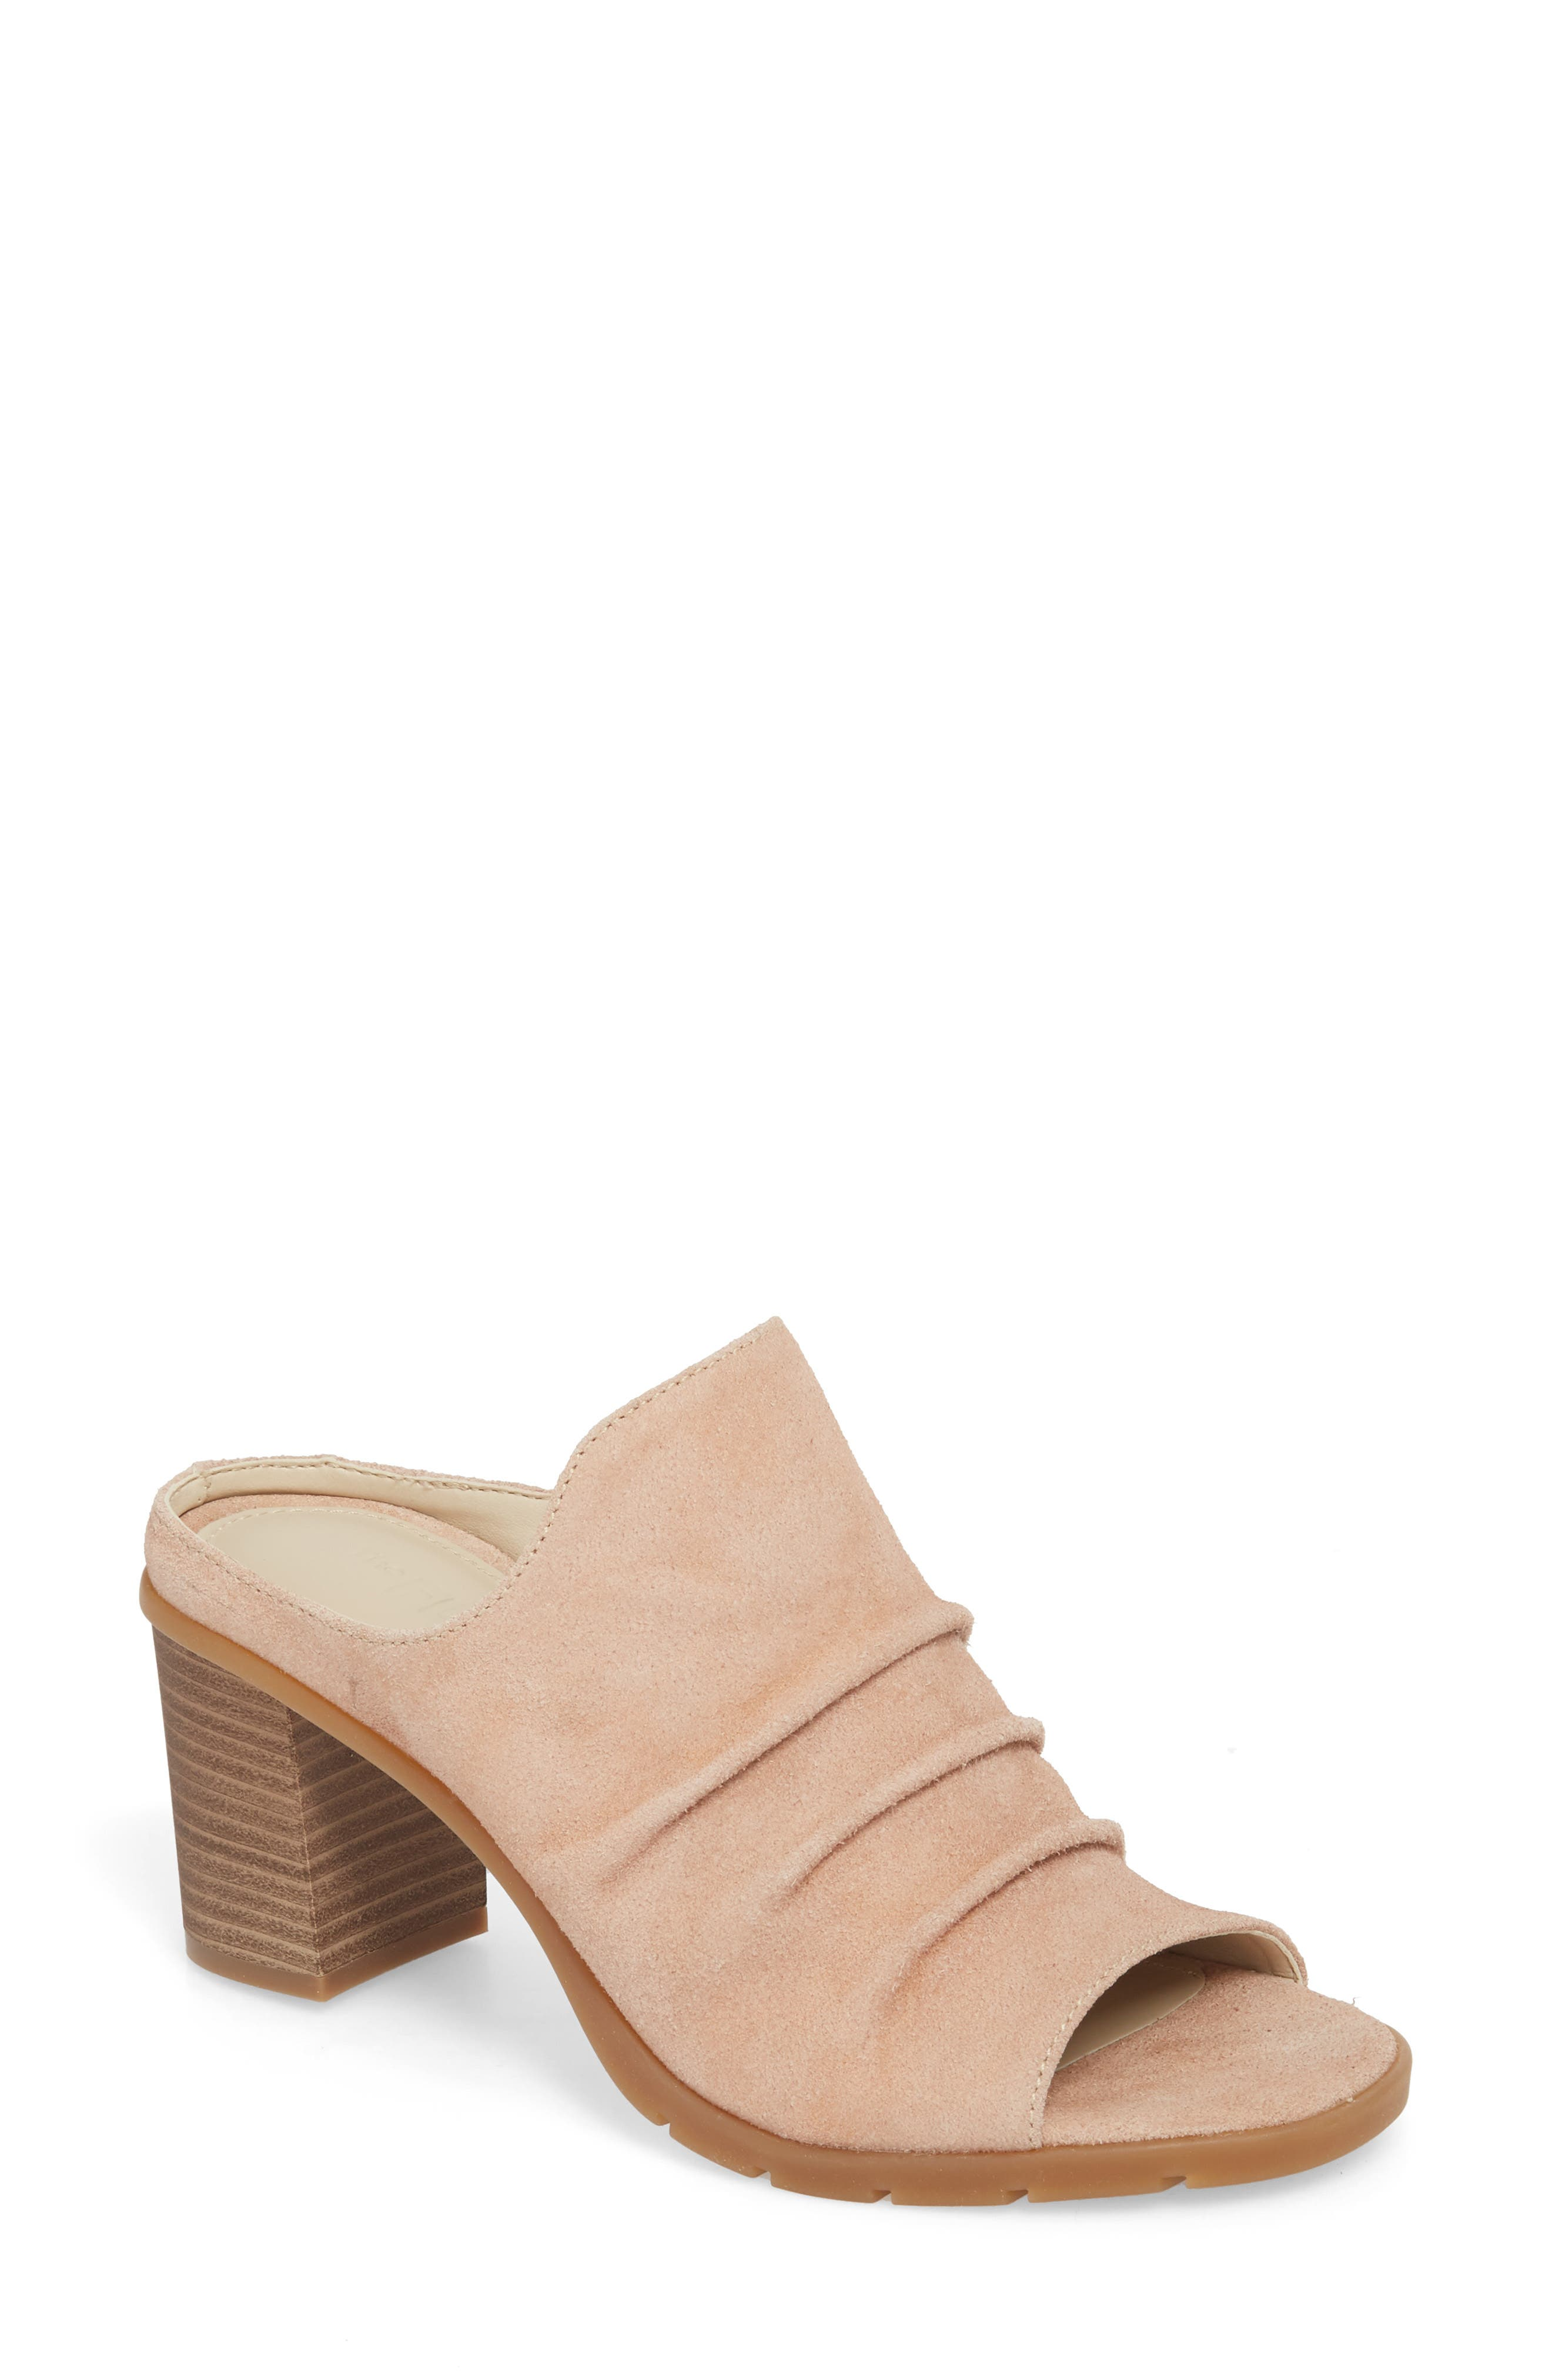 Aim to Pleat Mule,                         Main,                         color, ROSE GOLD LEATHER